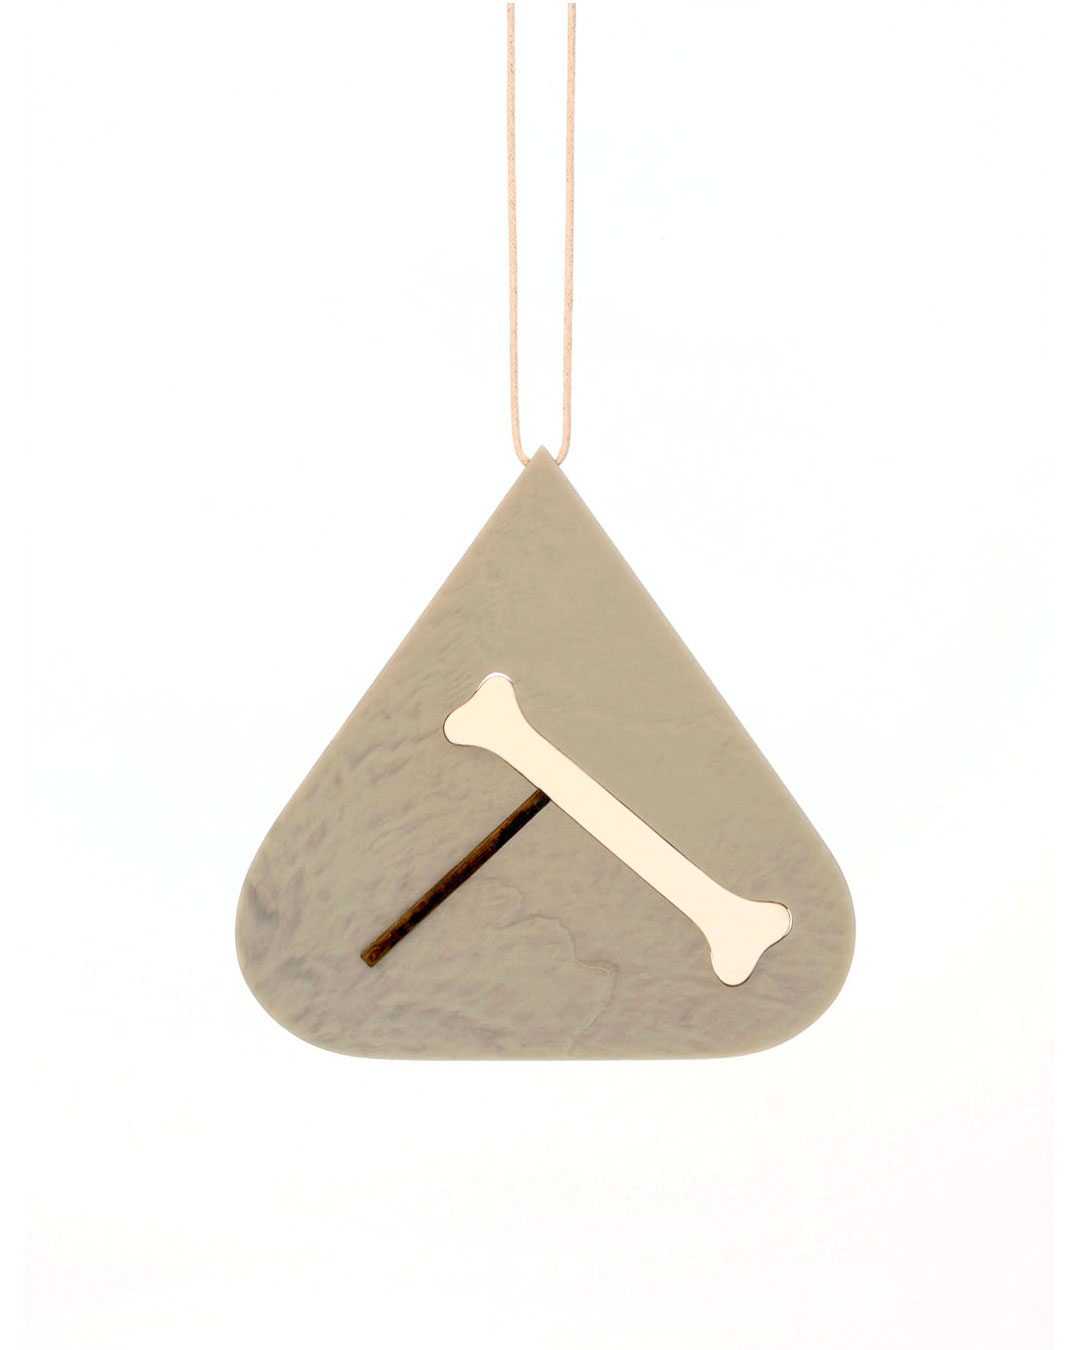 Julia Walter, Balance, 2014, necklace; Galalith, oak, cotton string, 130 x 130 x 5 mm, €1980